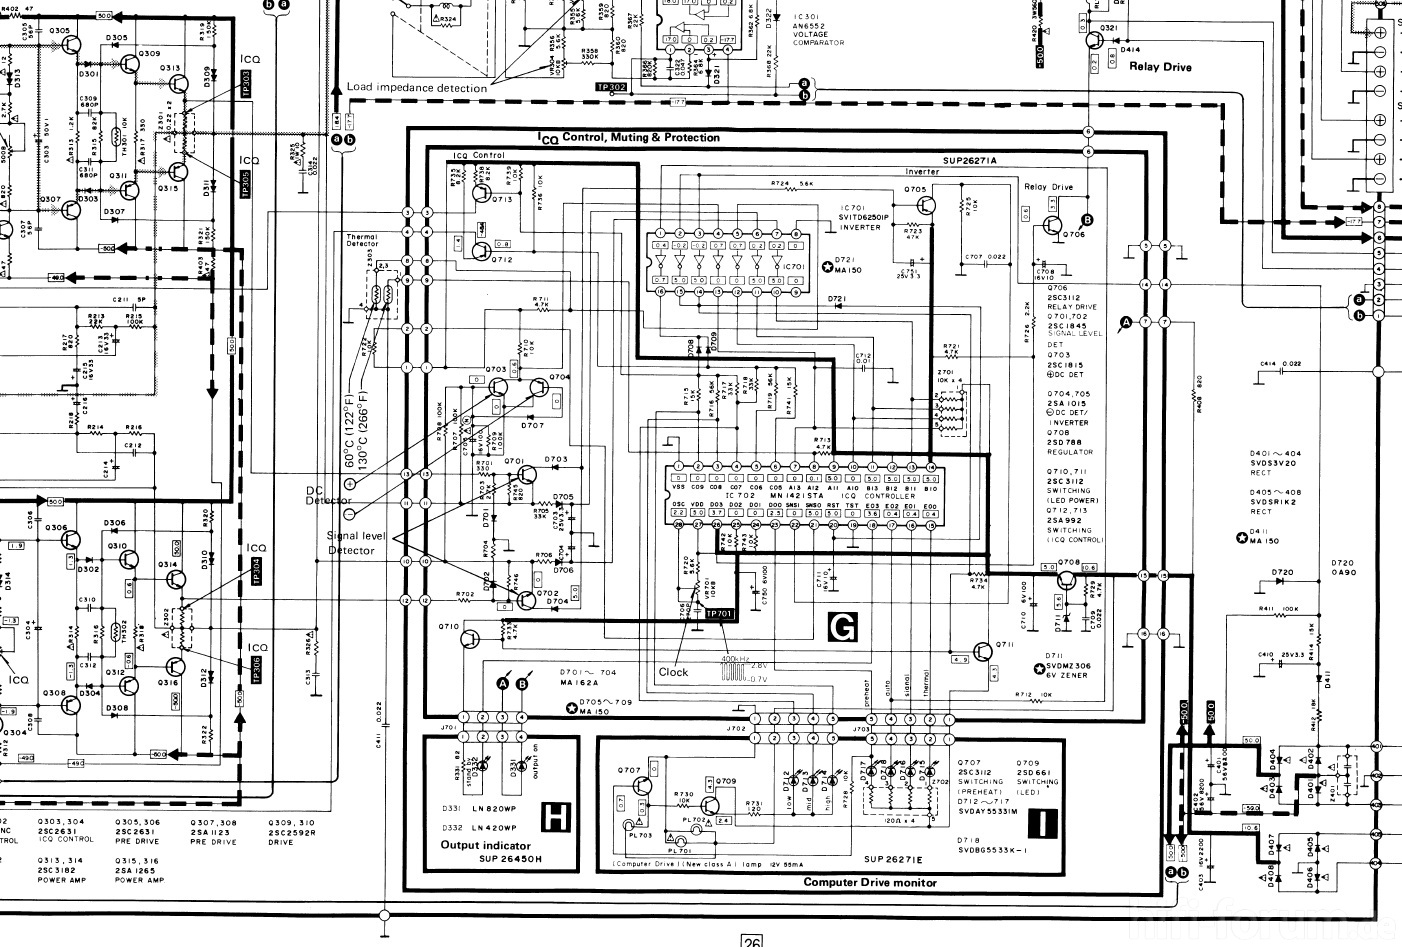 Technics Su V505 Schematic Detail Idle Current Control Computer And Elko Relay Protection Circuit